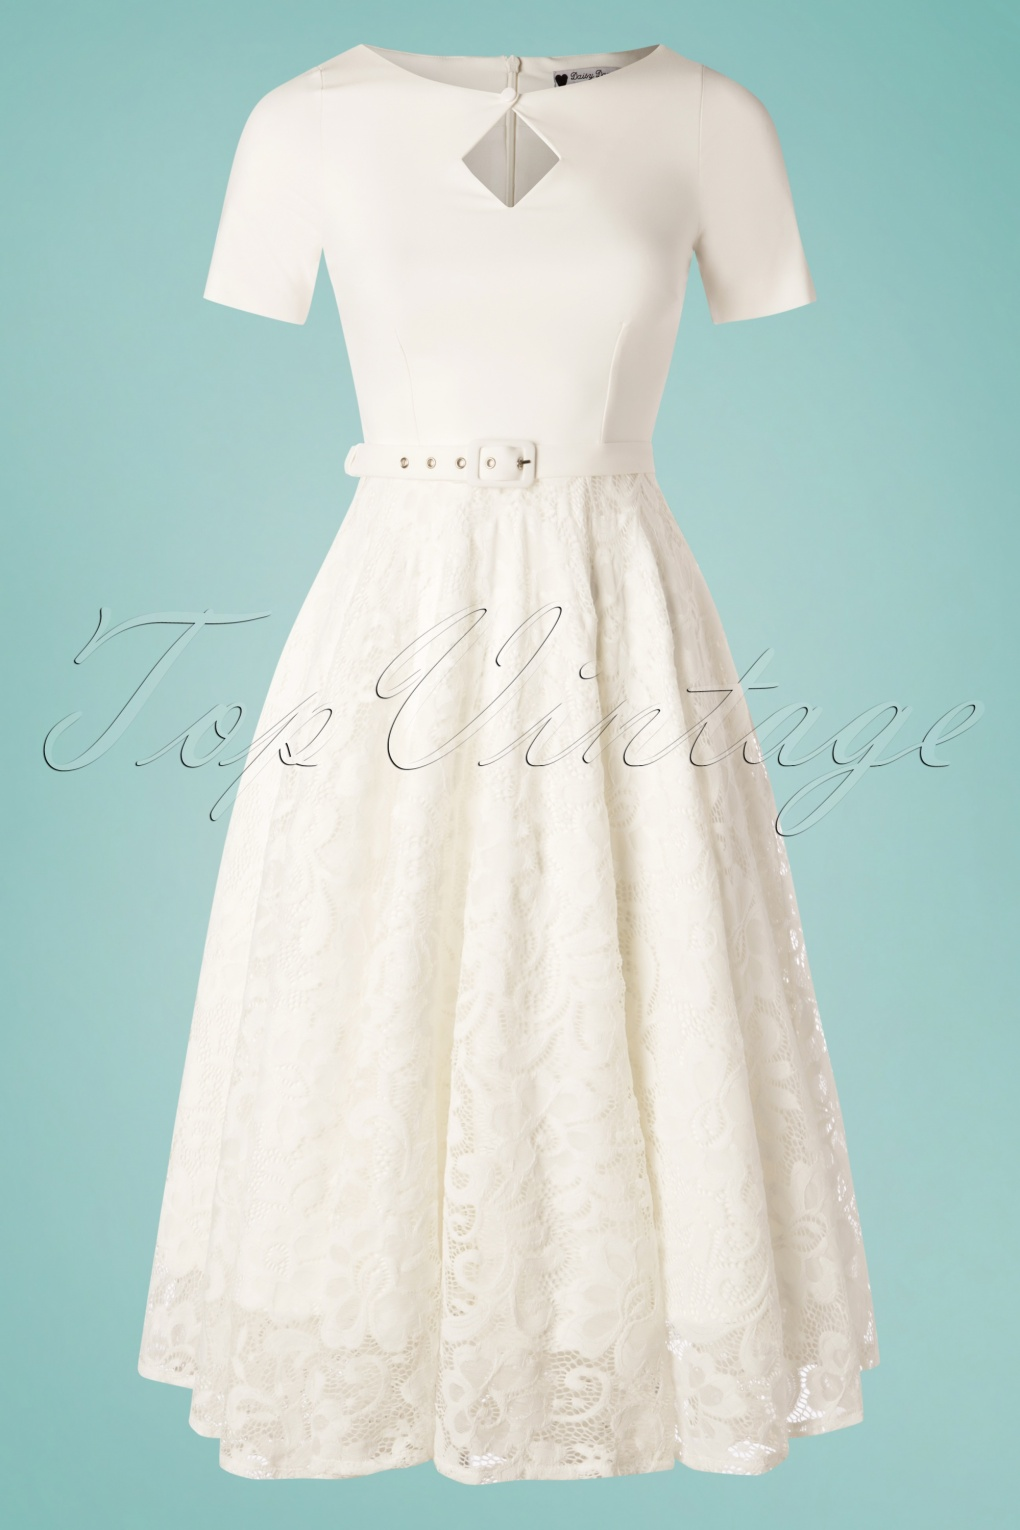 Vintage Inspired Wedding Dress | Vintage Style Wedding Dresses 50s Dolly Lace Swing Dress in Ivory White �189.90 AT vintagedancer.com